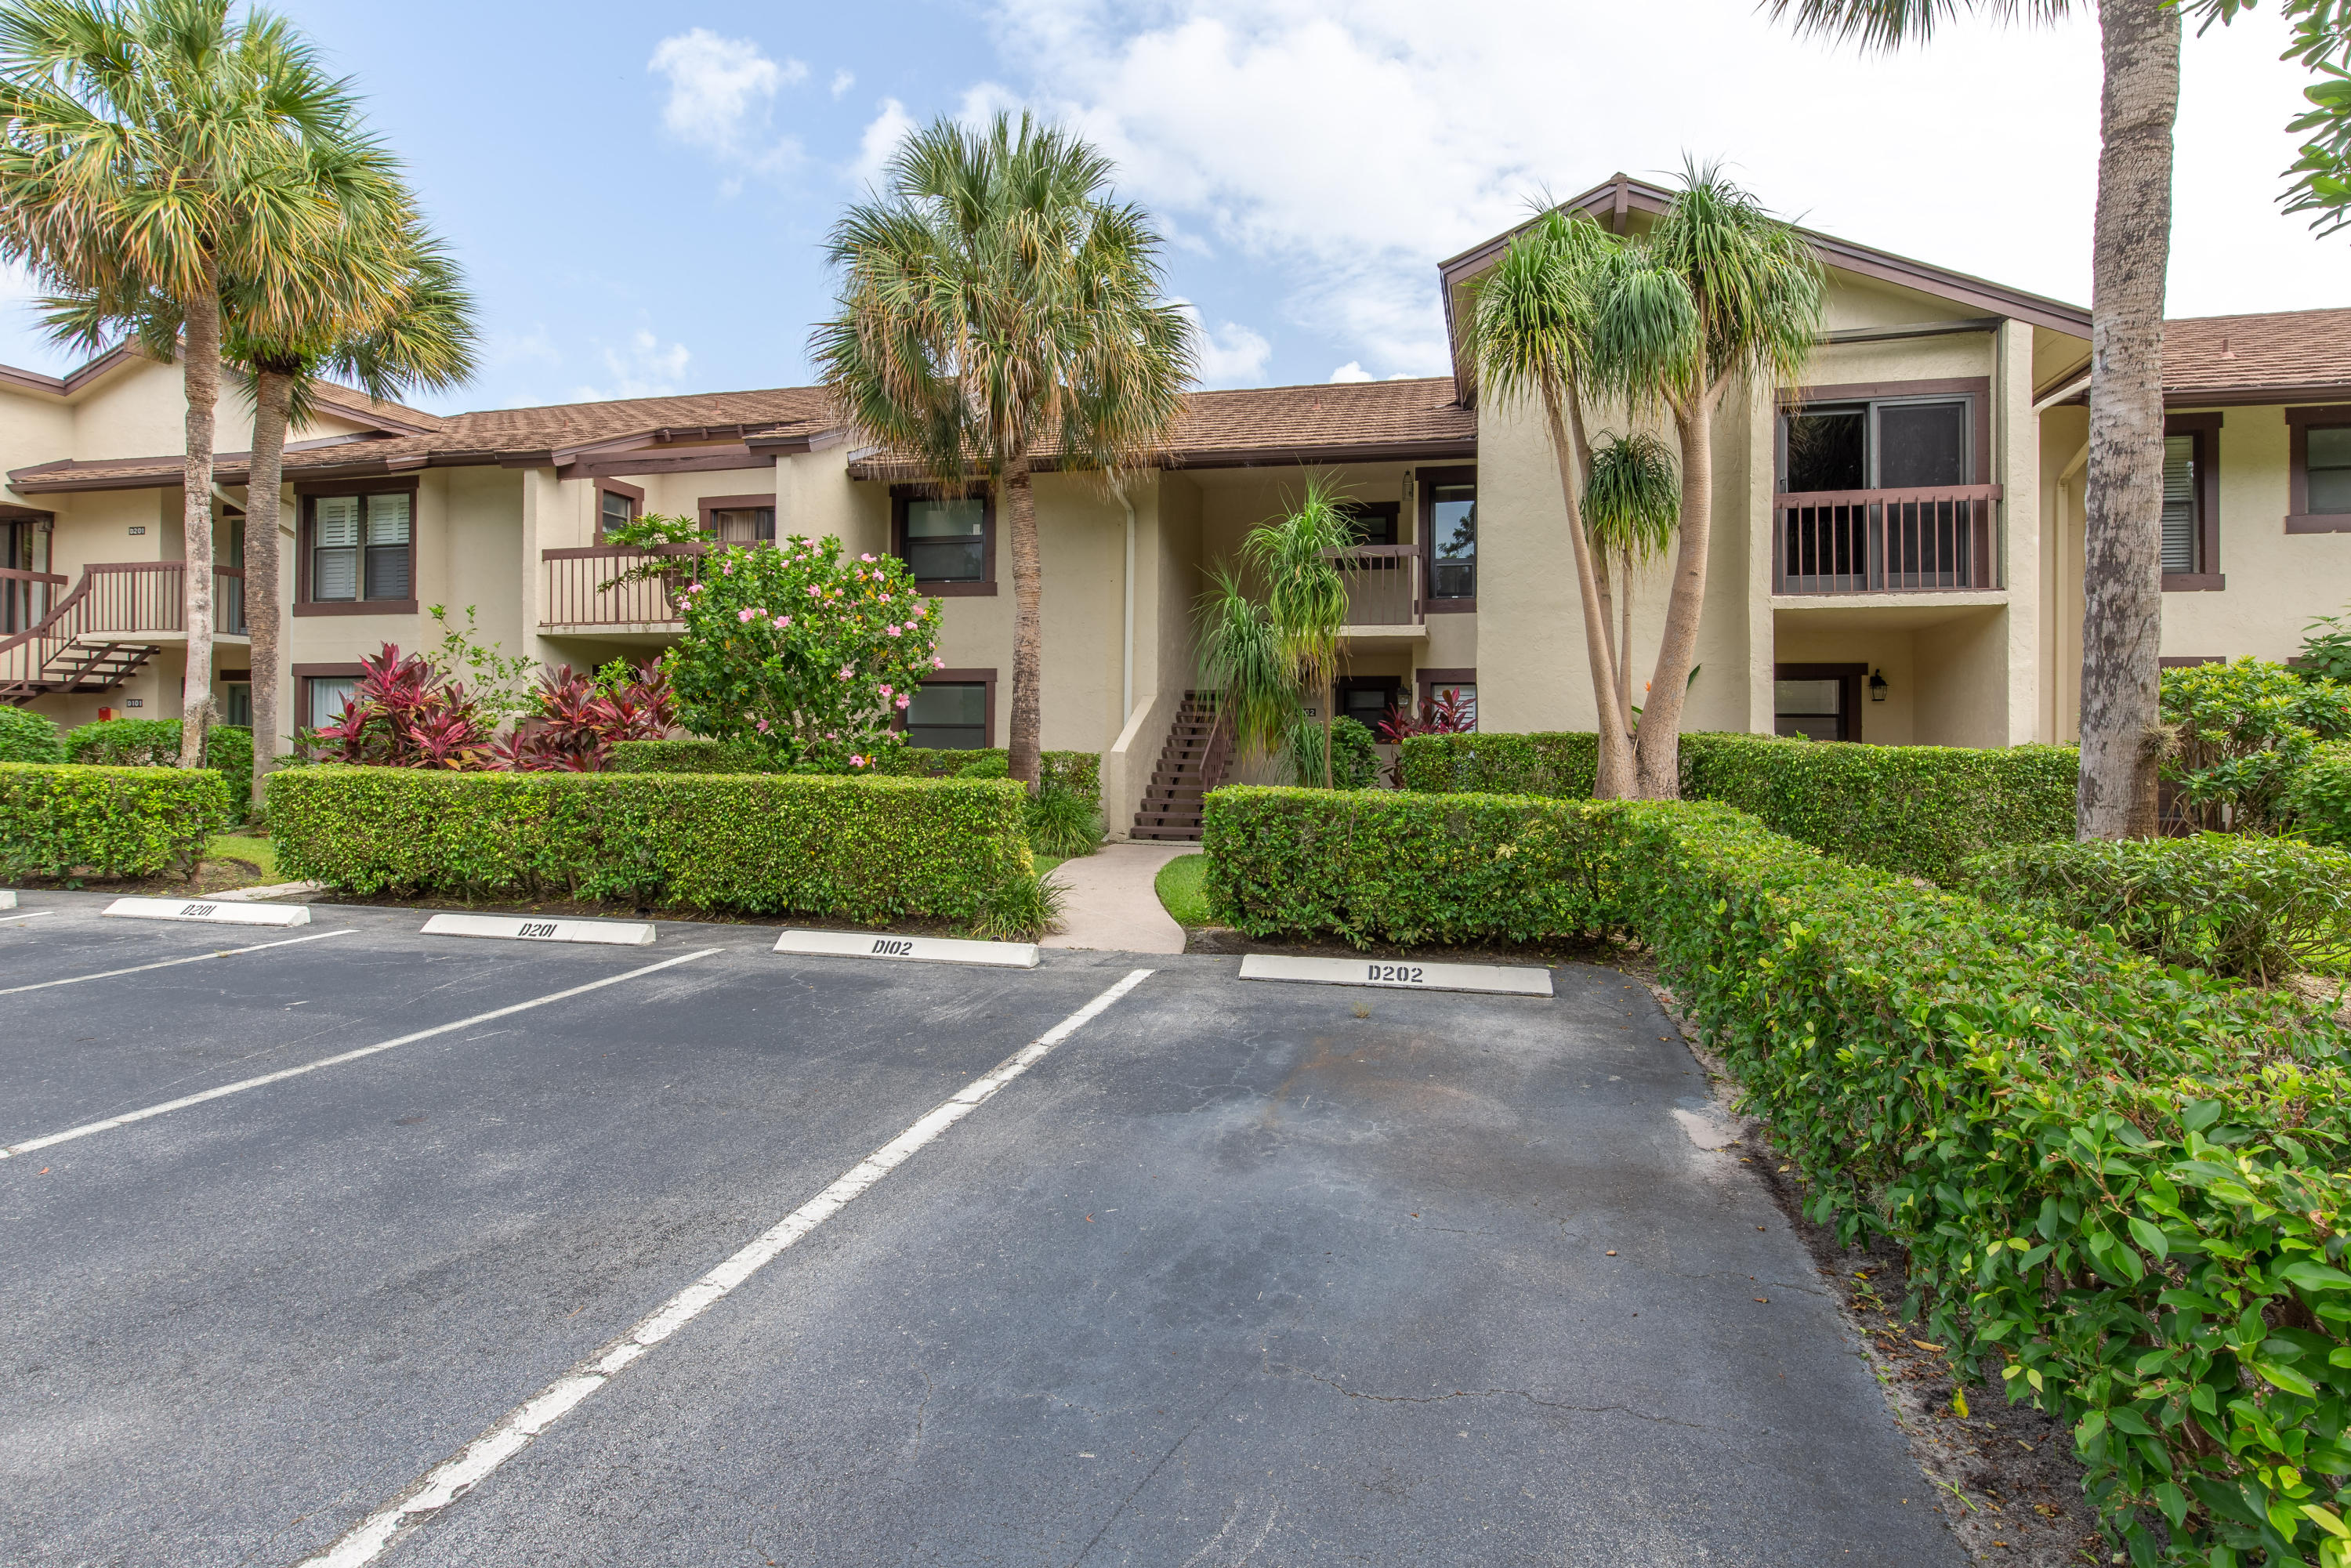 11355 Pond View Drive, Wellington, Florida 33414, 2 Bedrooms Bedrooms, ,2 BathroomsBathrooms,Townhouse,For Sale,Palm Beach Polo,Pond View,1,RX-10546645